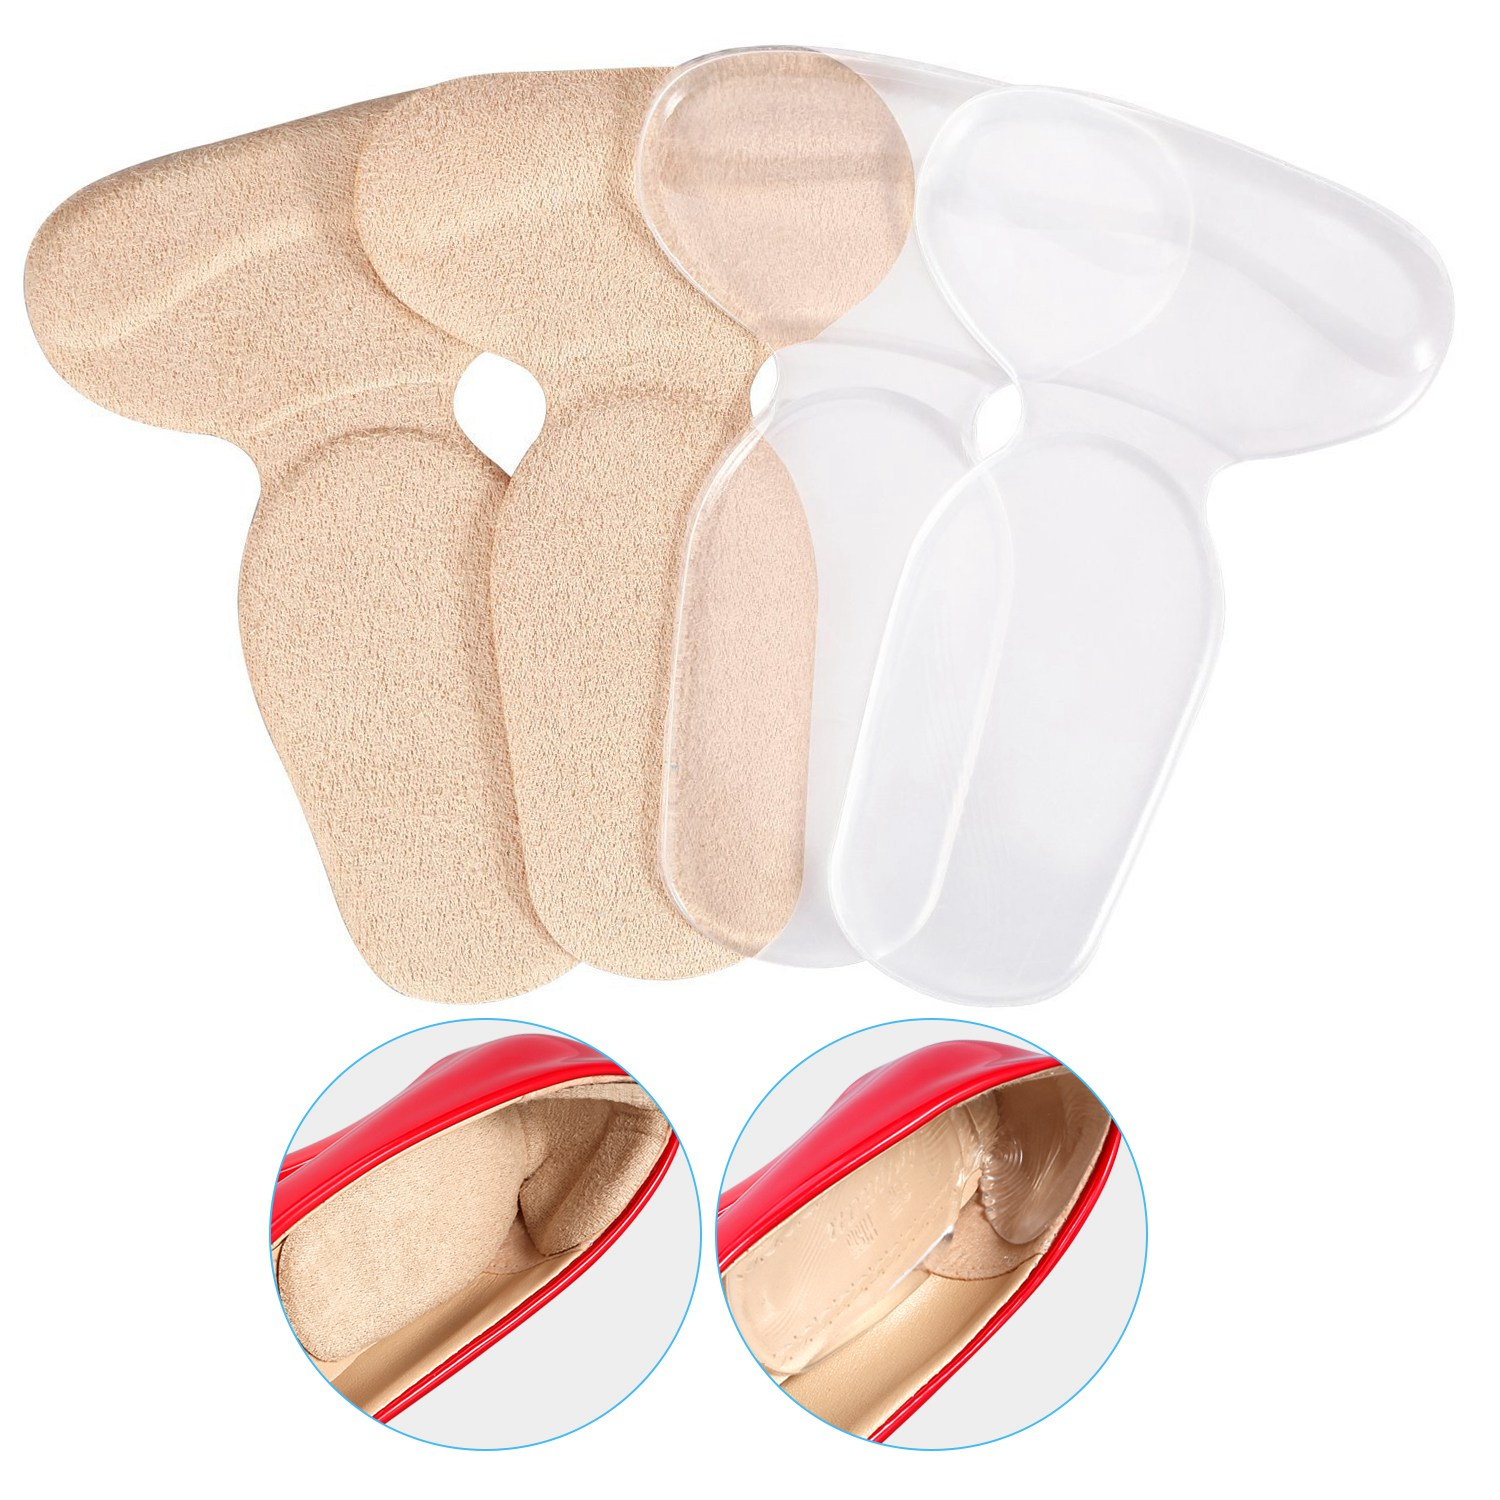 Tbest 2-20 Pairs Silicone Shoe Back Heel Inserts Insoles Gel Pad Cushion Grip Liner US